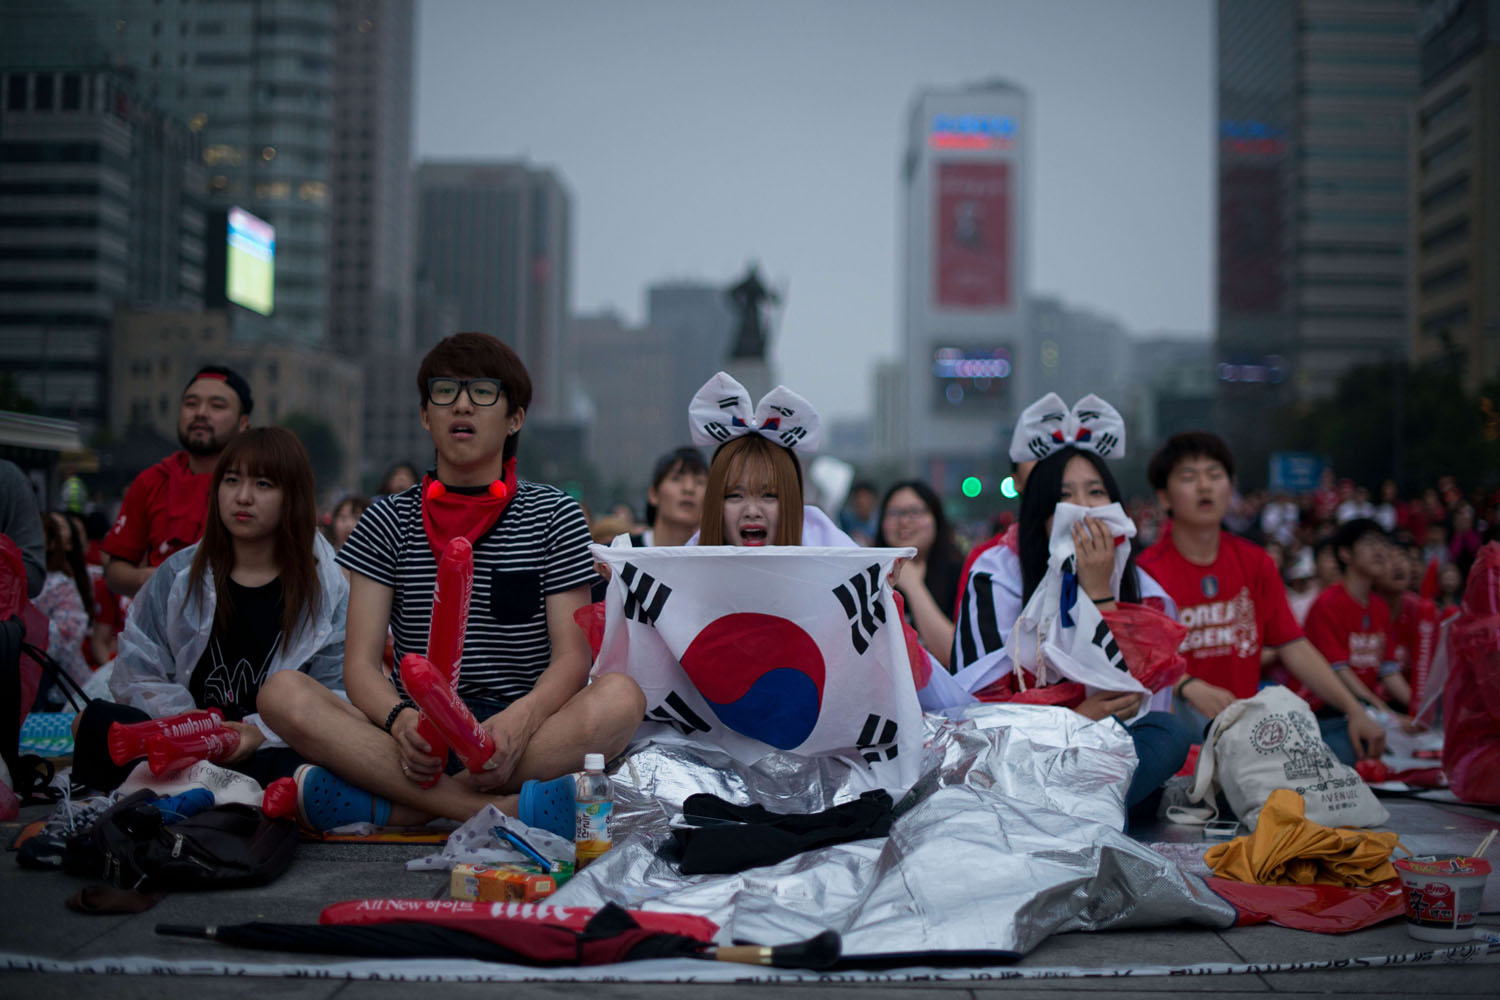 Jun. 23, 2014. South Korean football fans react as their team loses to Algeria in the 2014 World Cup in Brazil, as they watch the match on giant screens in central Seoul.